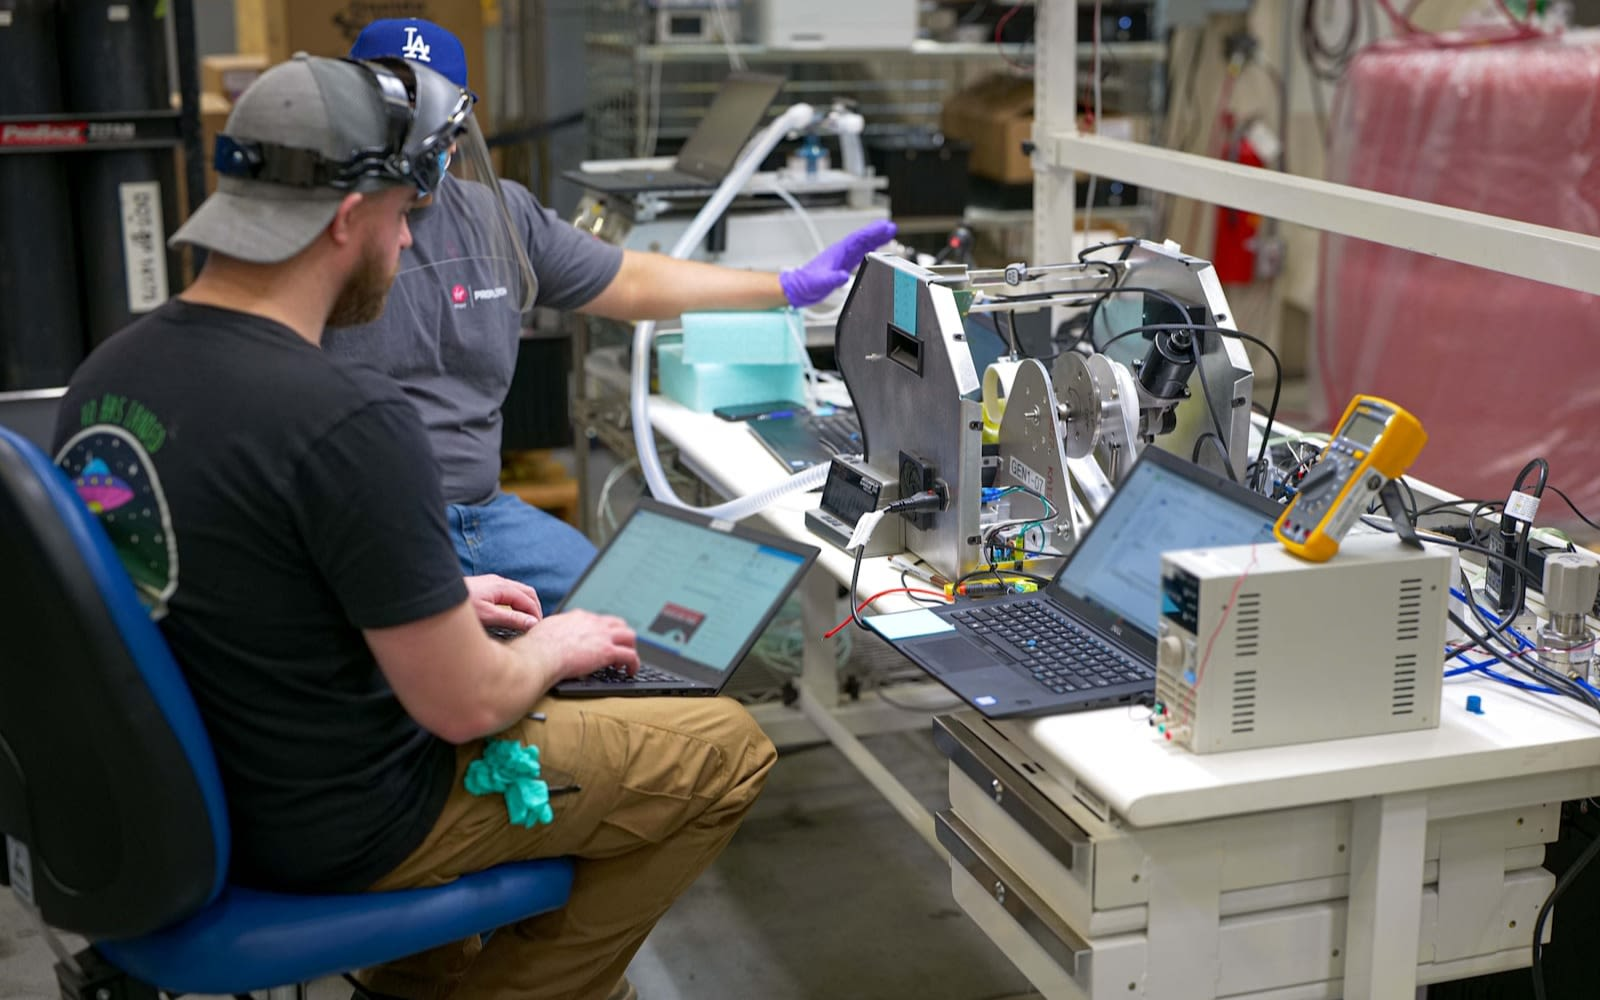 picture of 2 men sat at a work bench with 2 laptops both wearing visors look to be testing a ventilator in the process of being made